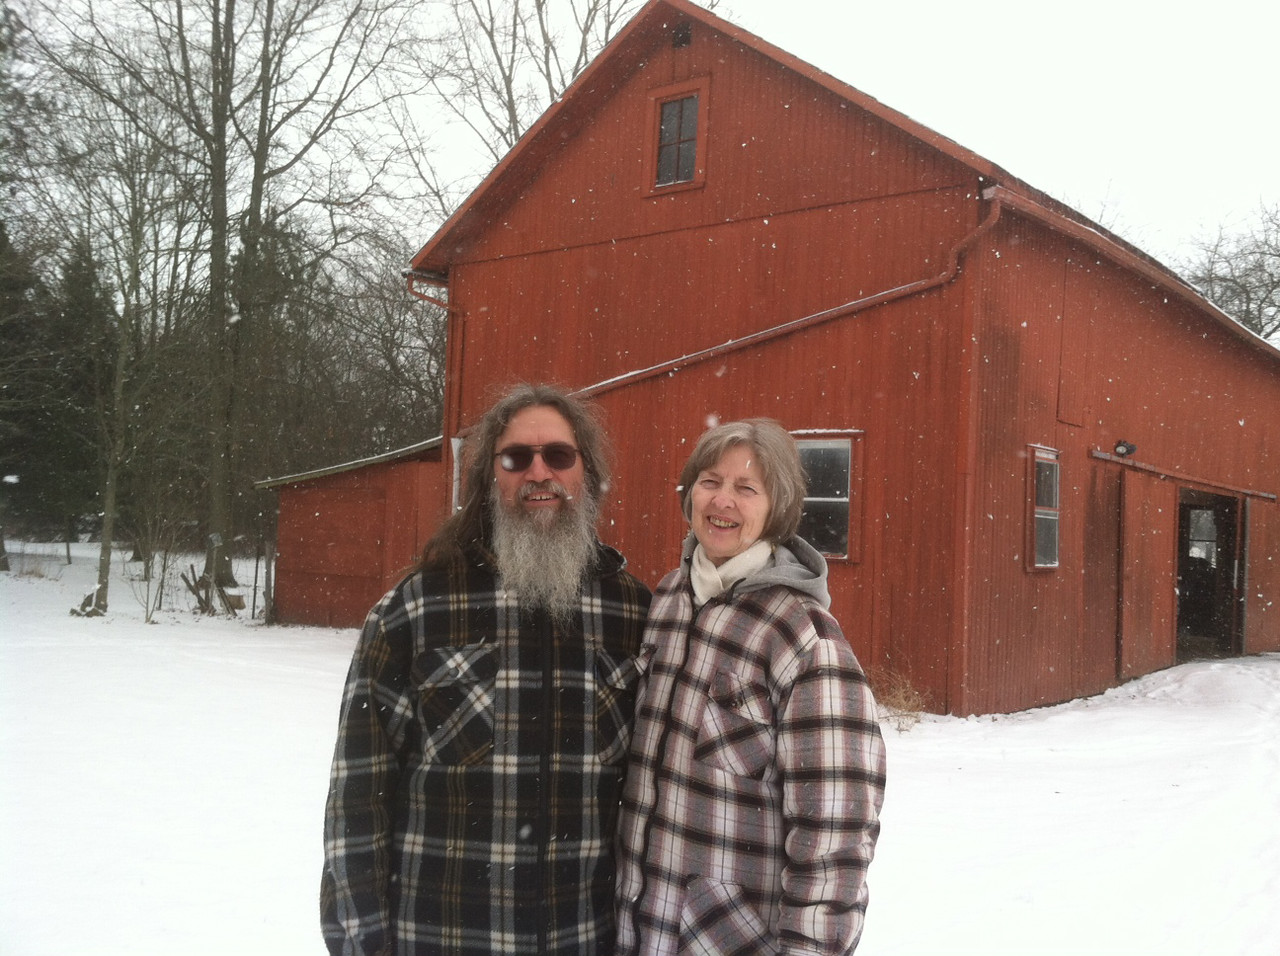 PHOTO PROVIDED Claude and Mary Cuchna, residents of Homer Township, have donated their 20-acre property to Western Reserve Land Conservancy, a nonprofit organization. The action, called an easement, is the first recorded in the township.